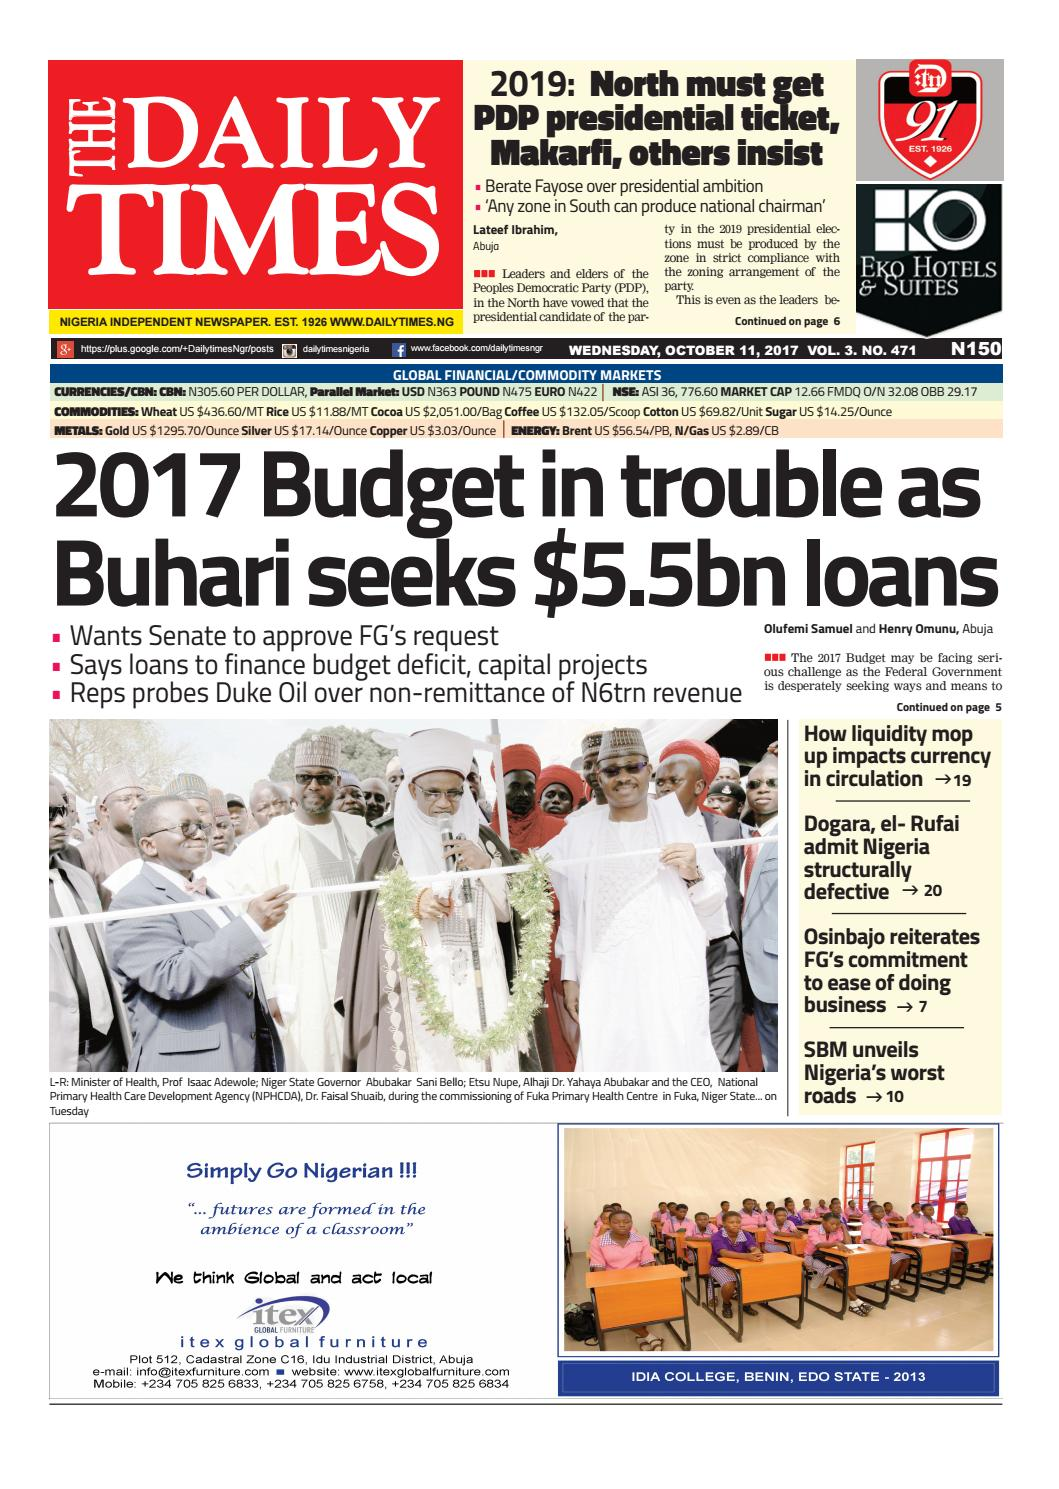 Dtn 11 10 17 by Daily Times of Nigeria - issuu